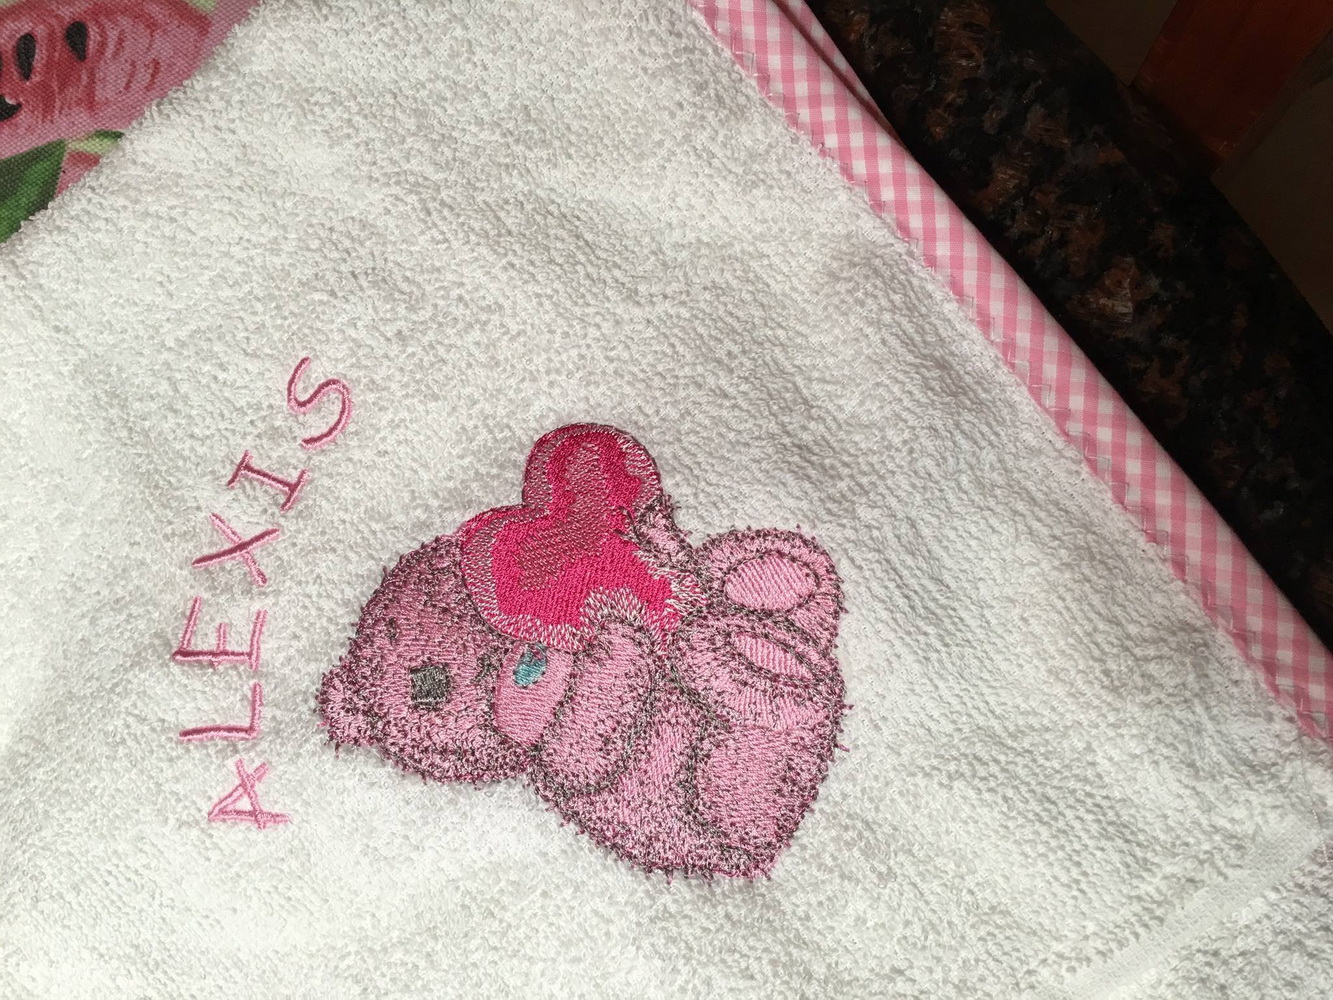 Teddy Bear with a pillow heart design on embroidered towel